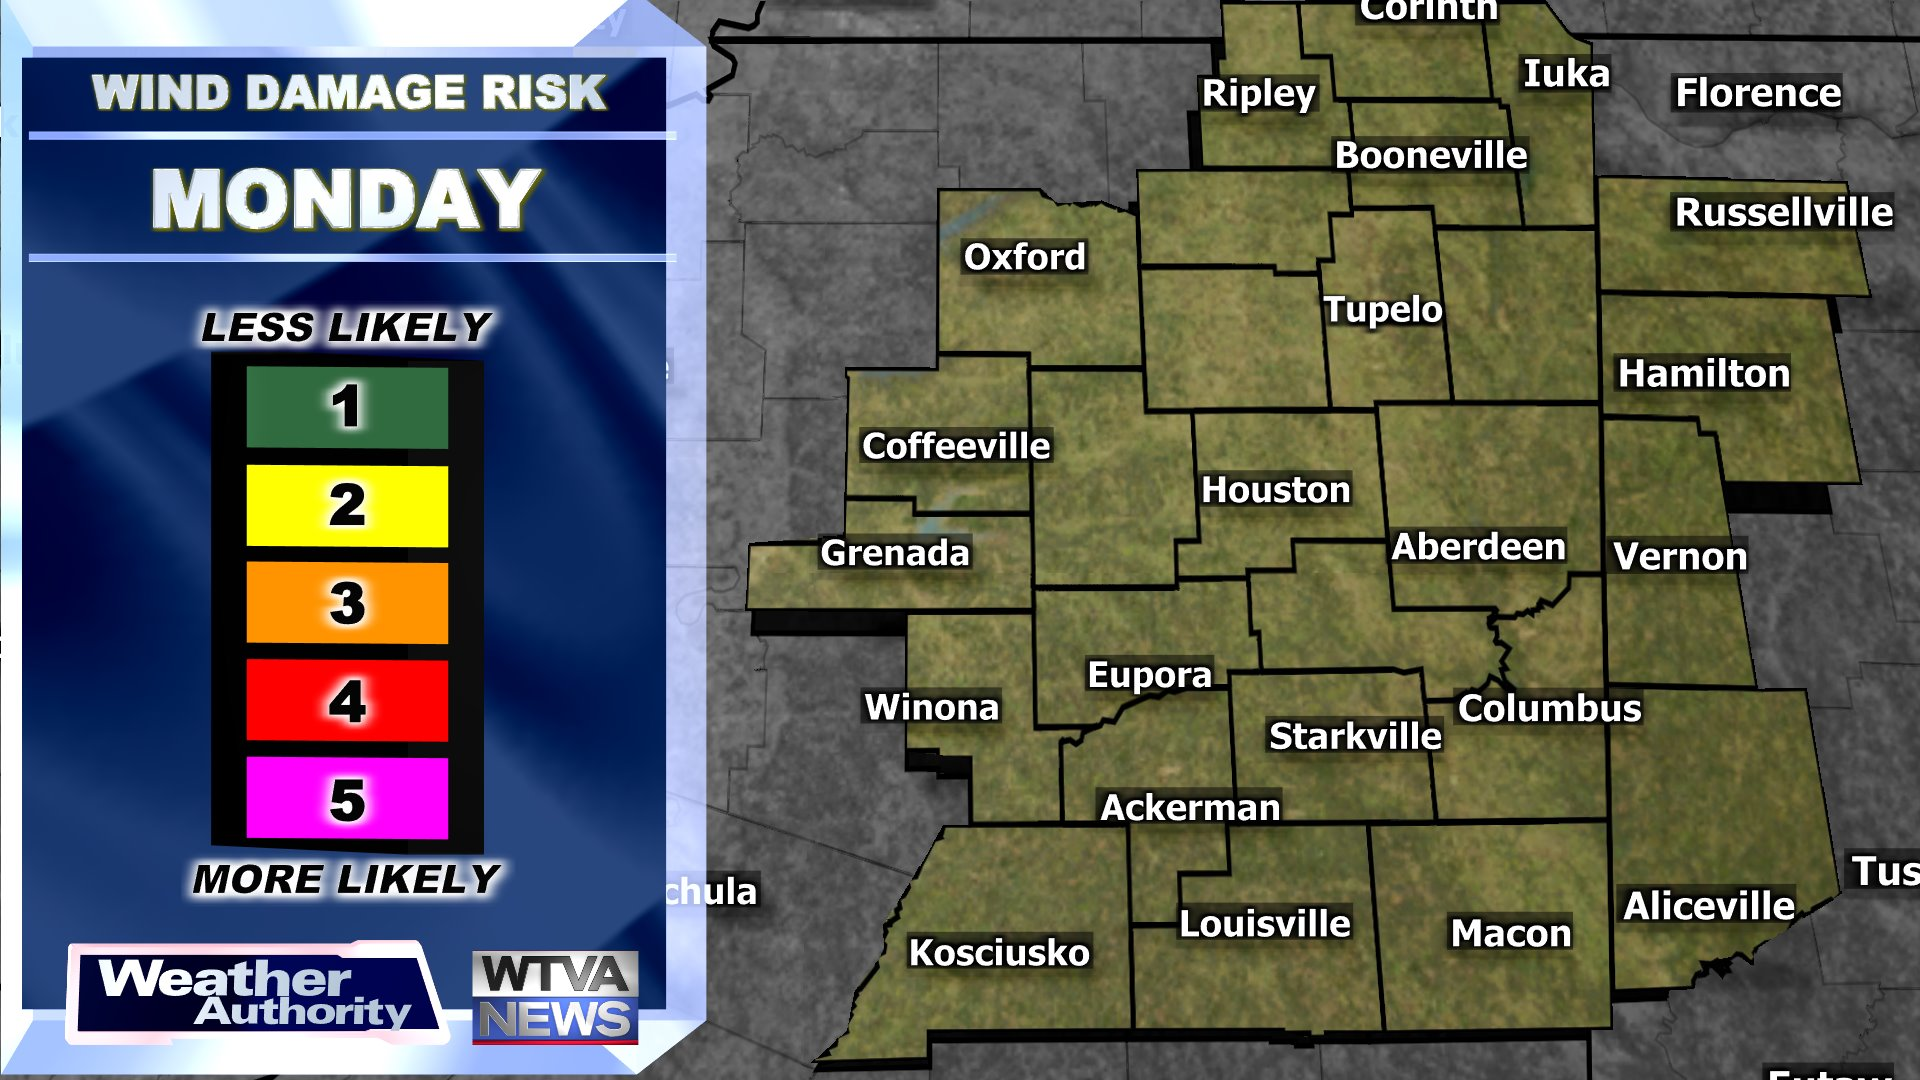 Today's Wind Damage Risk